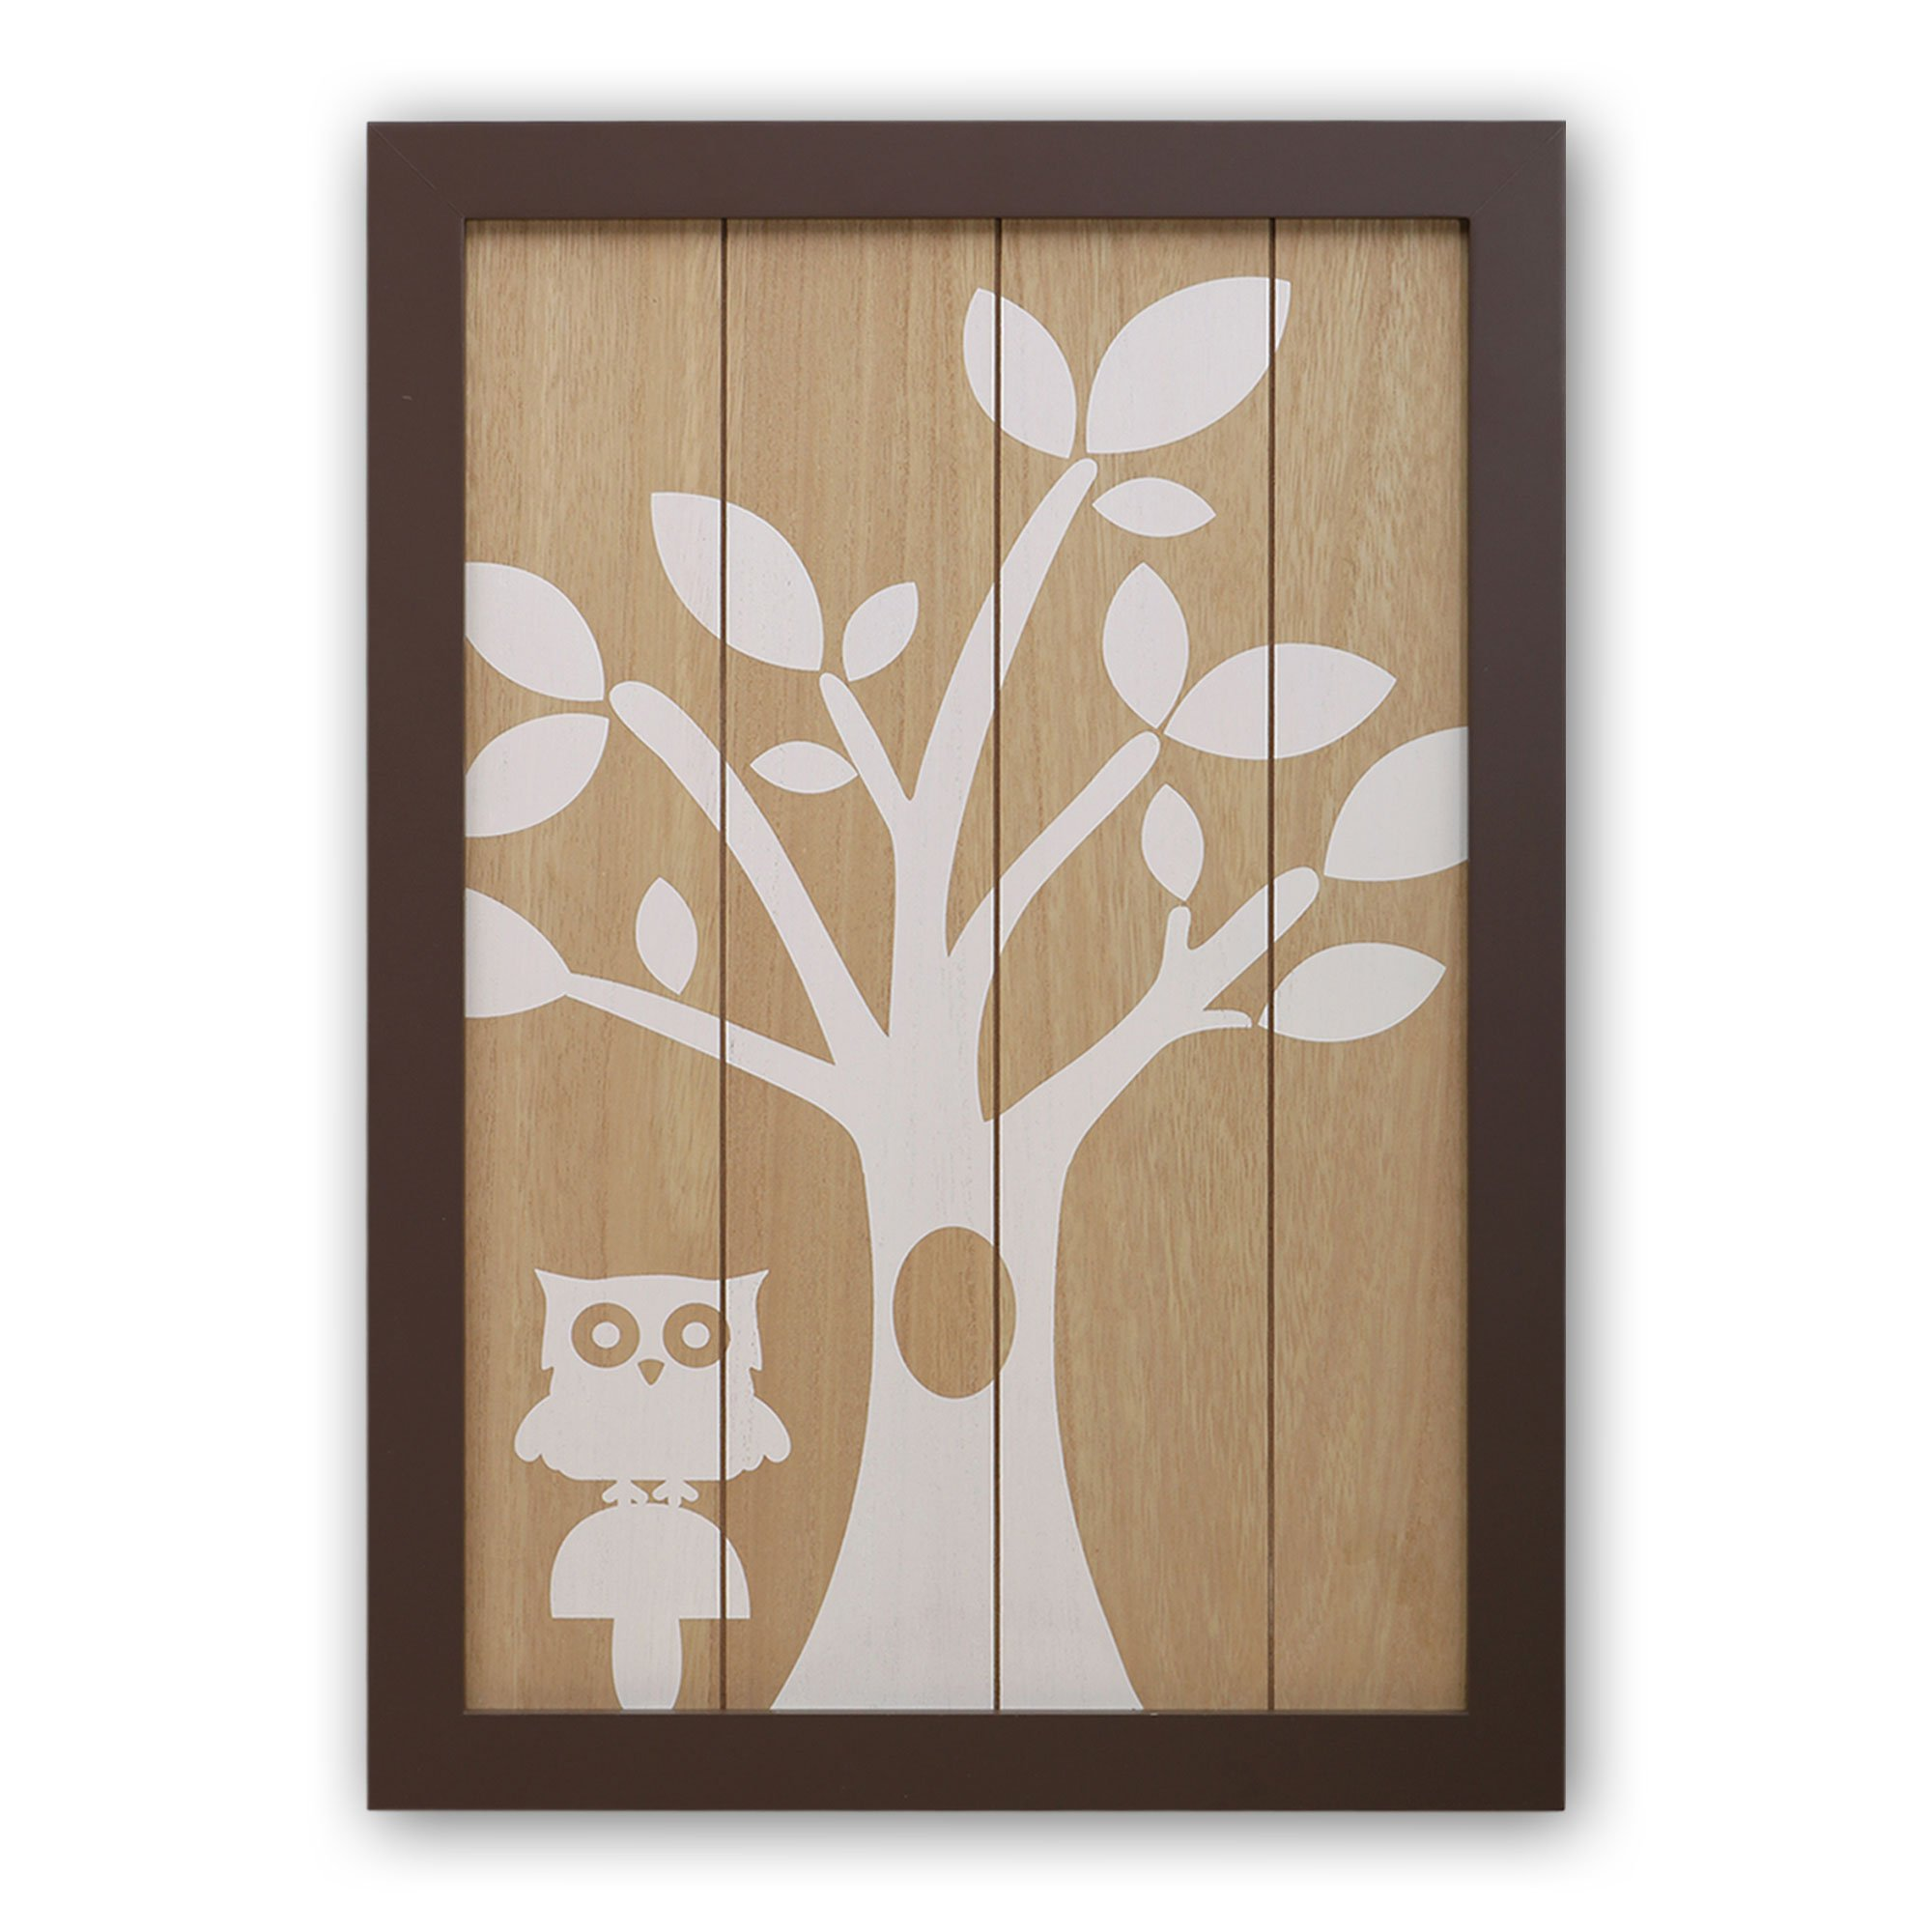 Framed Woodland Wall Art - 14.5 by 20.5 Inches - Tree Owl Silhouette